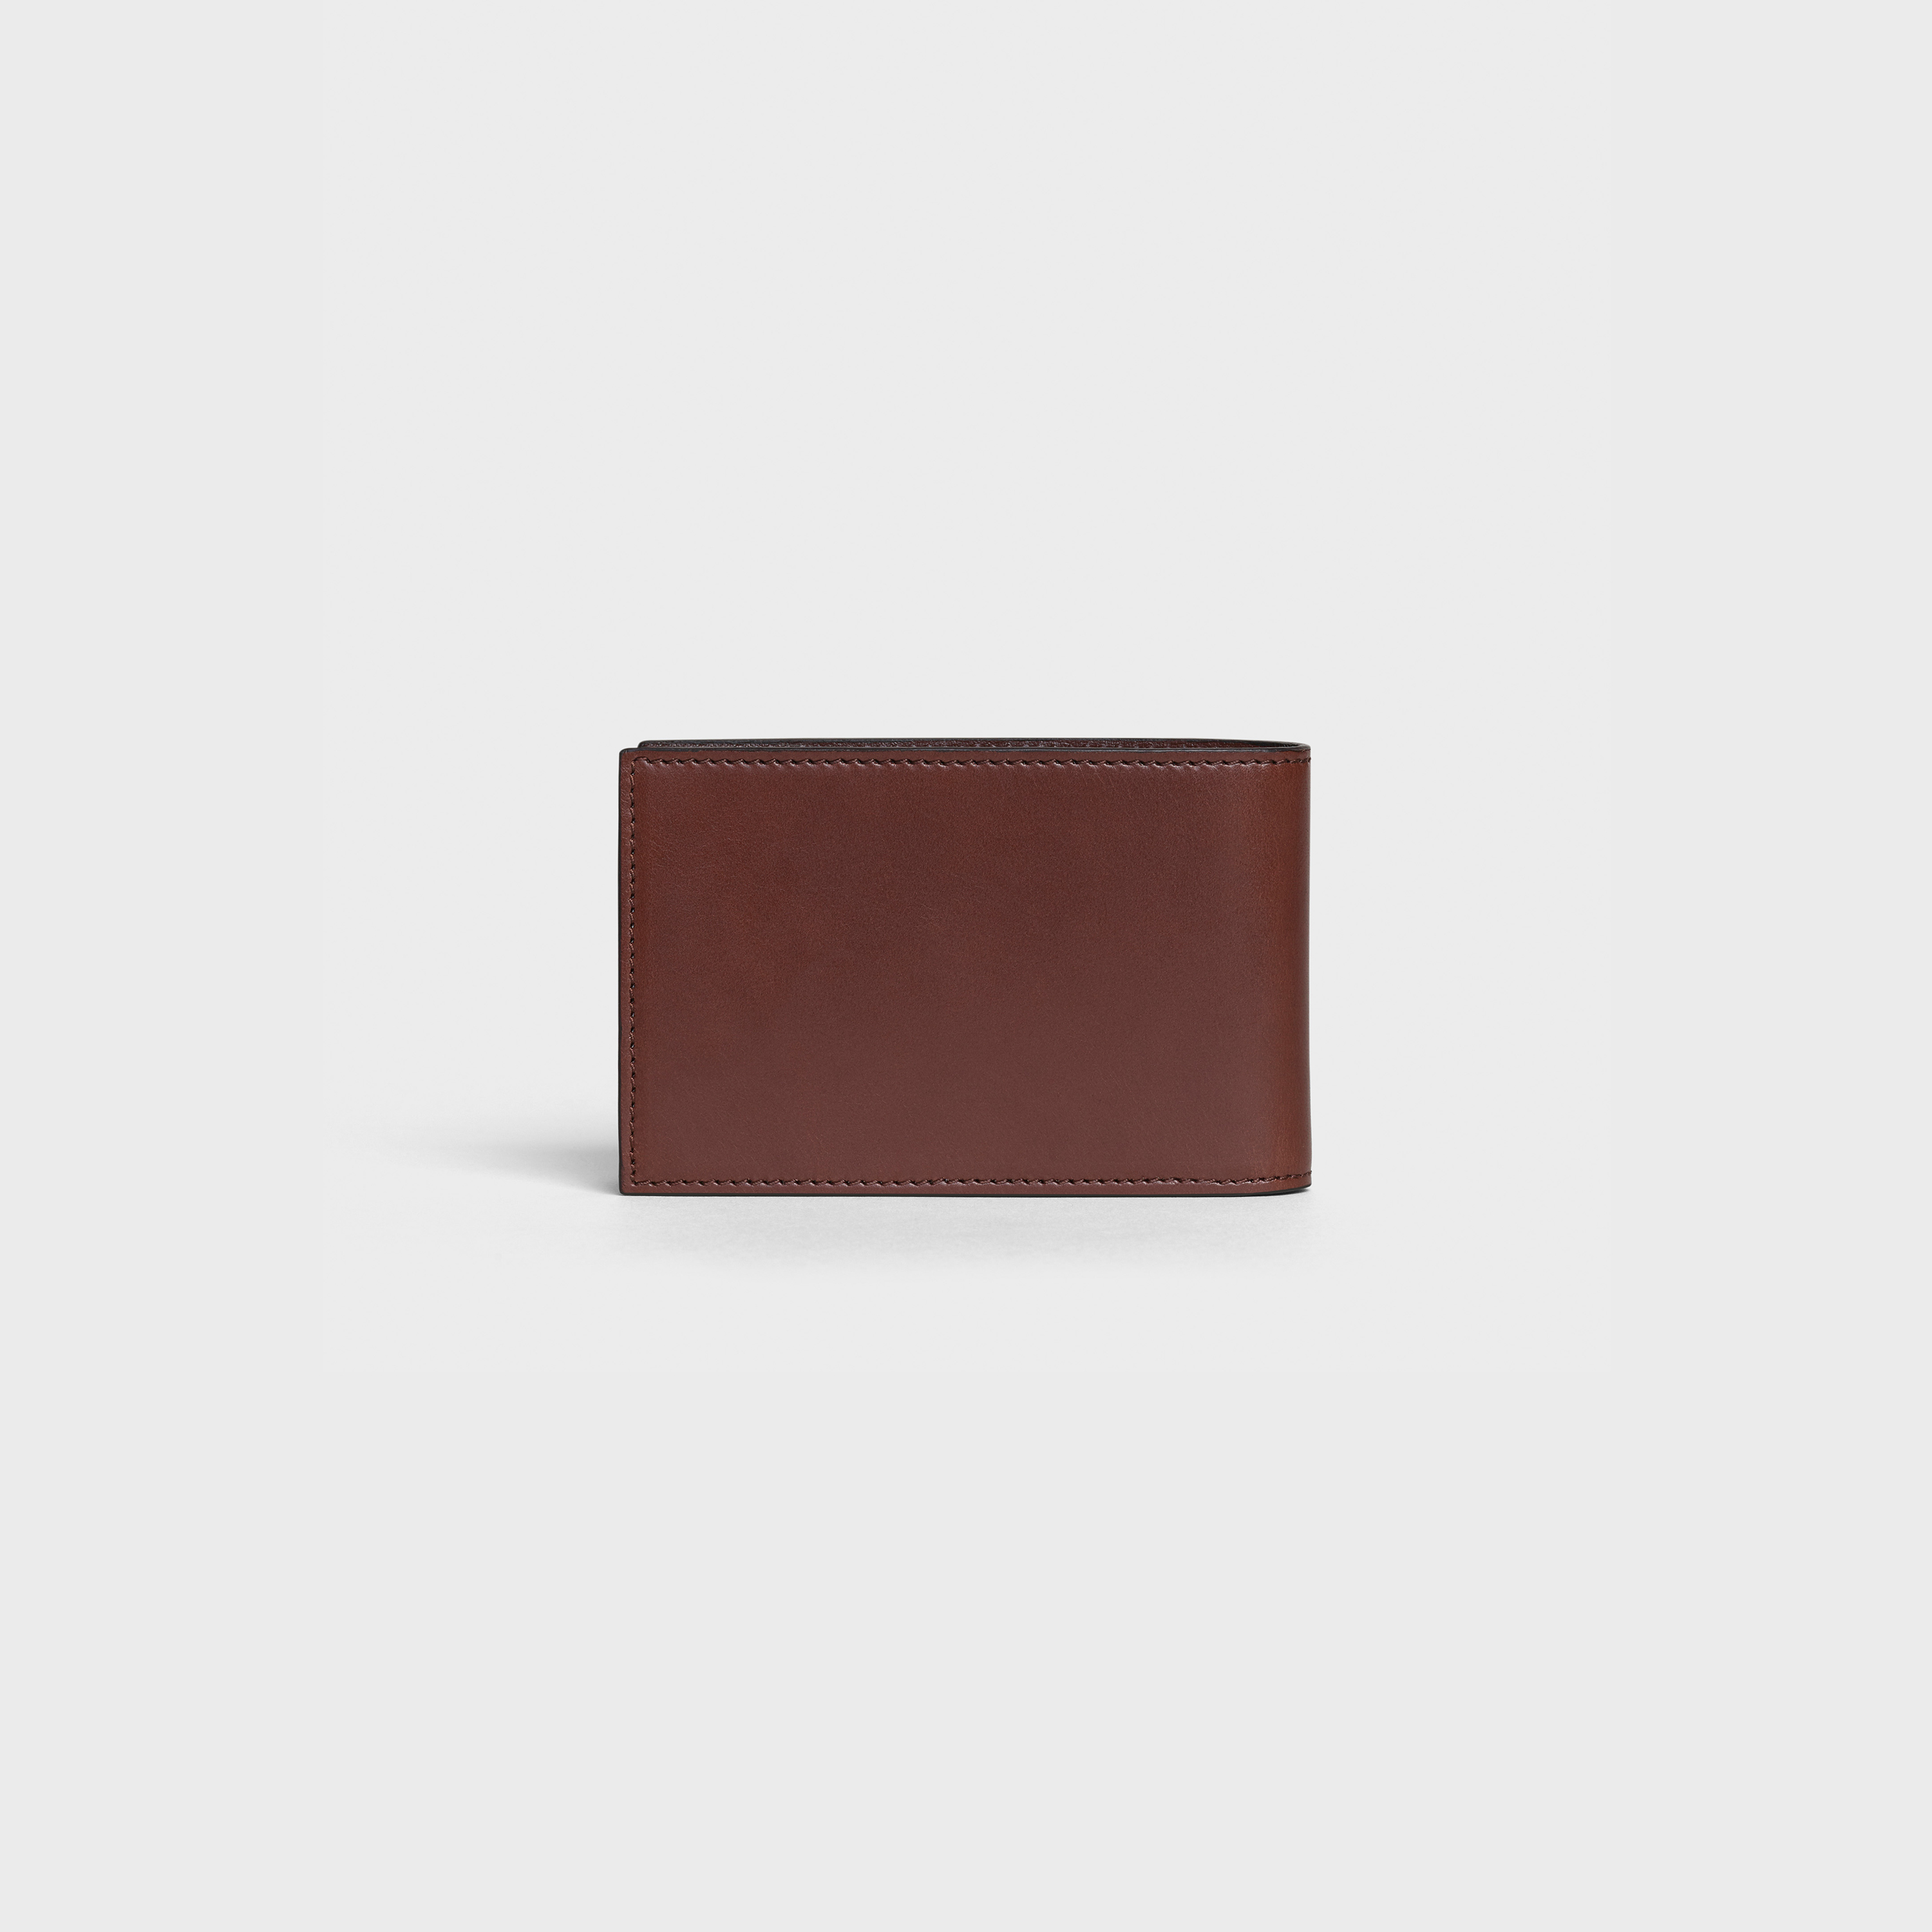 Compact Bi-fold Wallet in smooth calfskin | CELINE